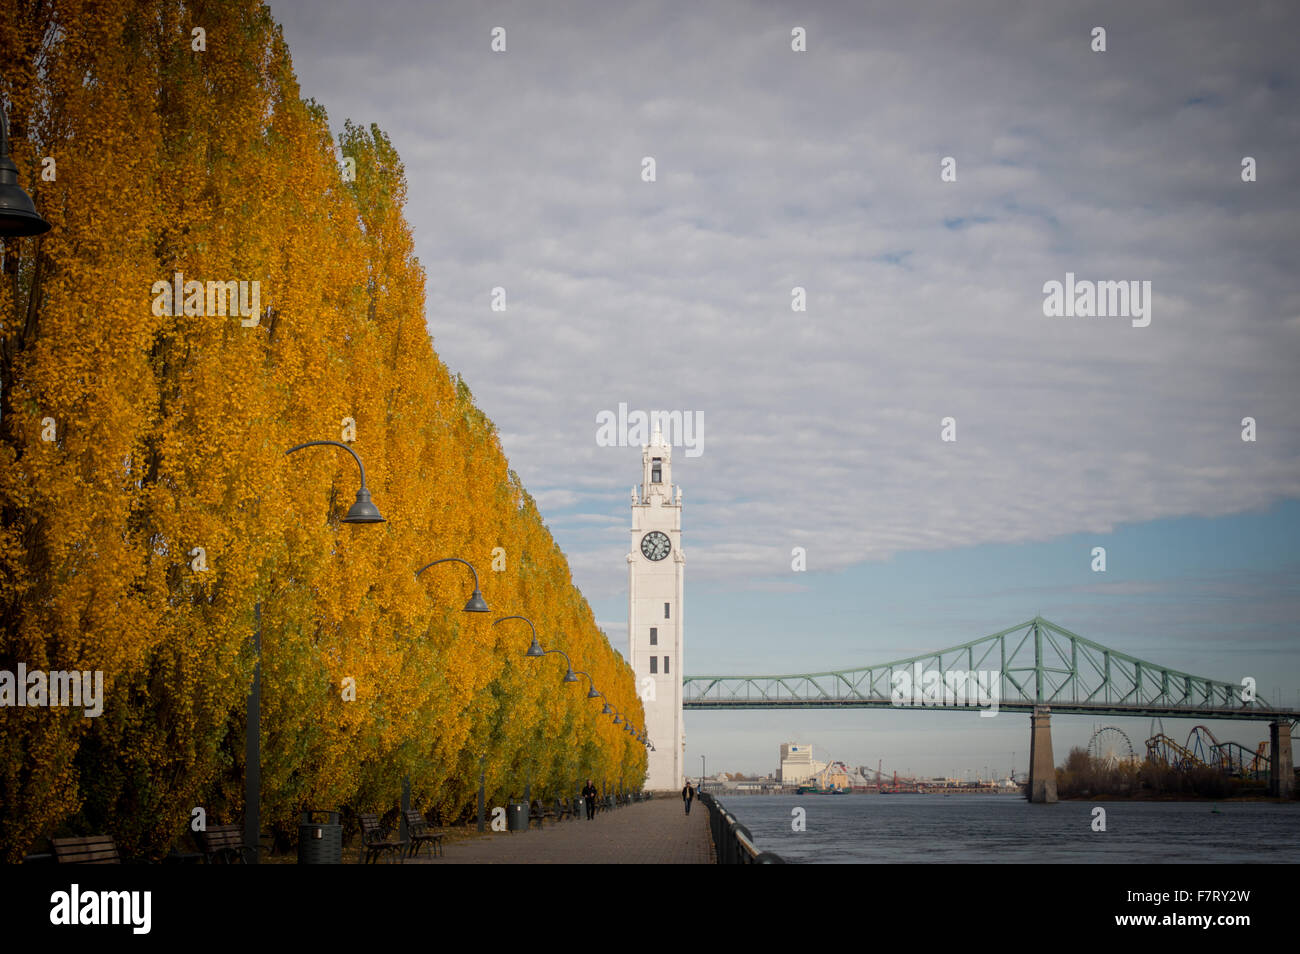 Montreal Old port in Fall - Stock Image